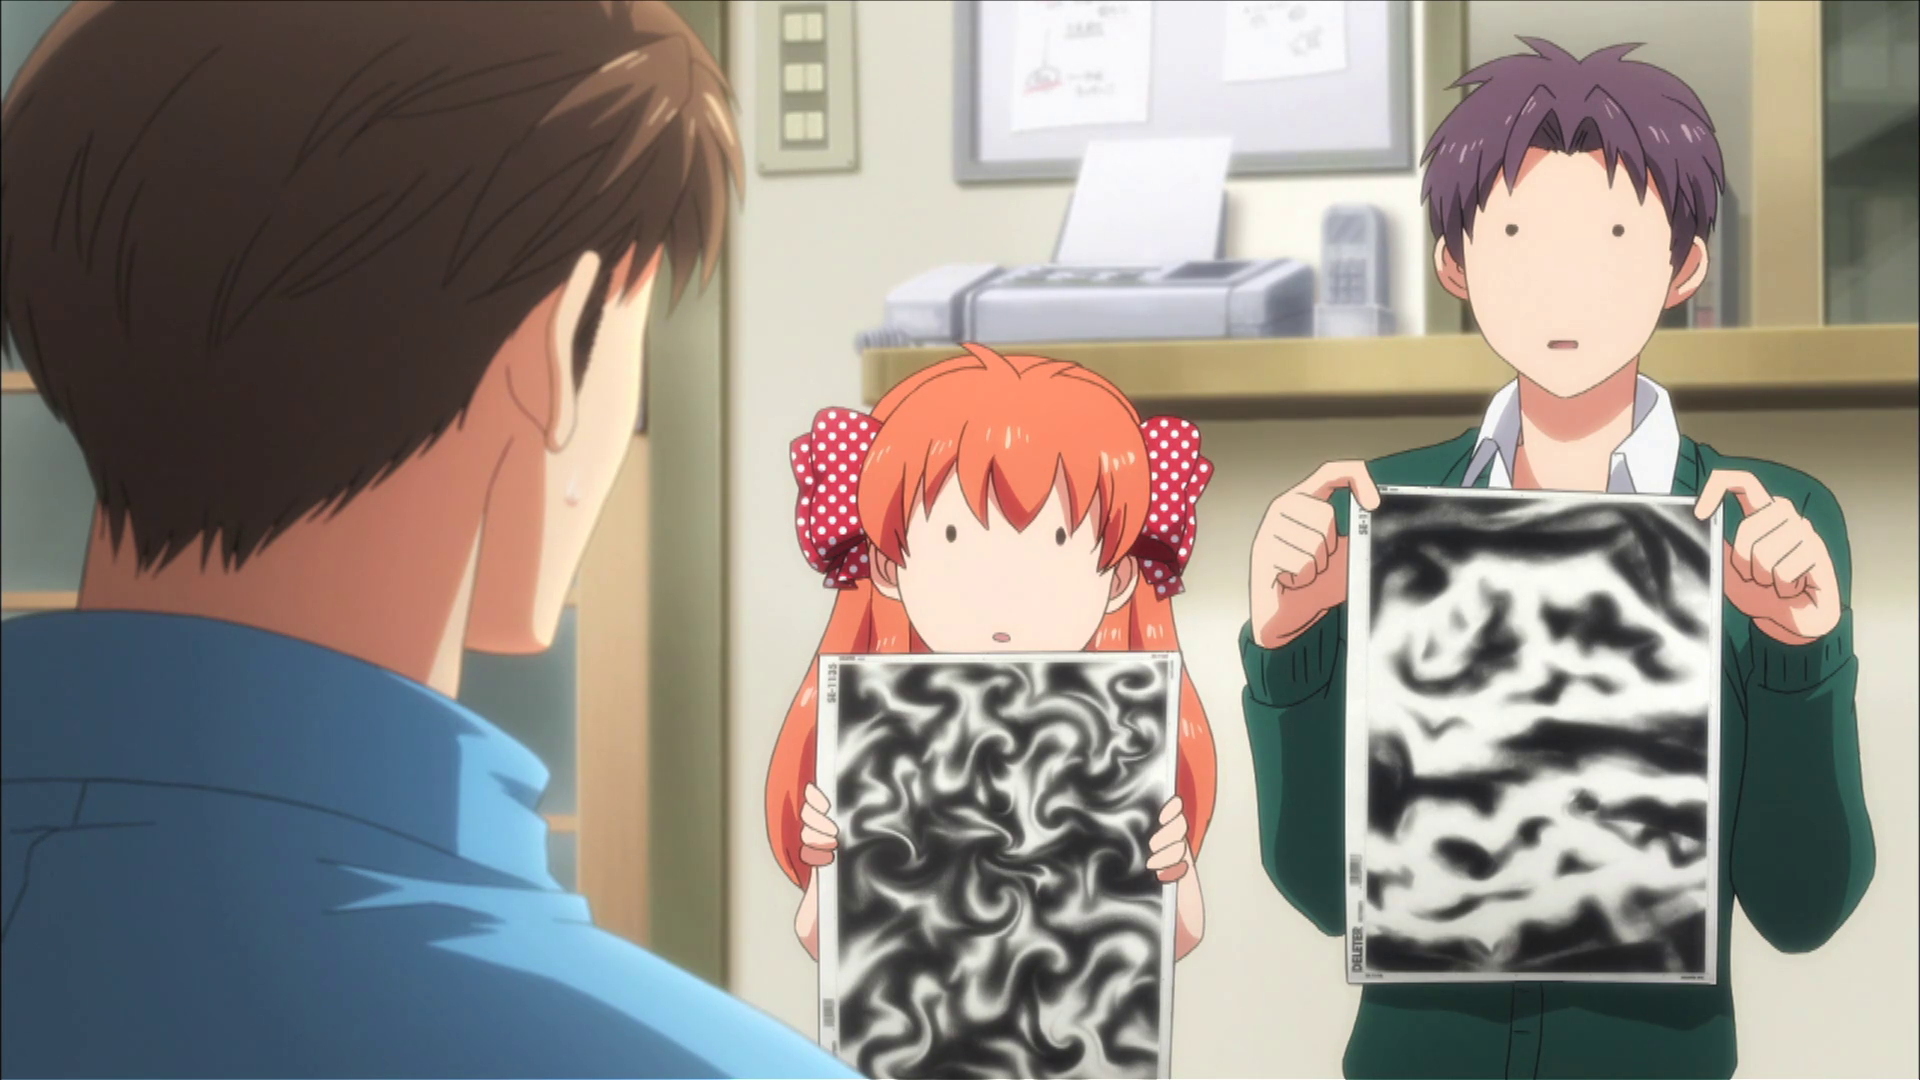 Two characters from Nozaki-kun holding up abstract ink paintings for approval